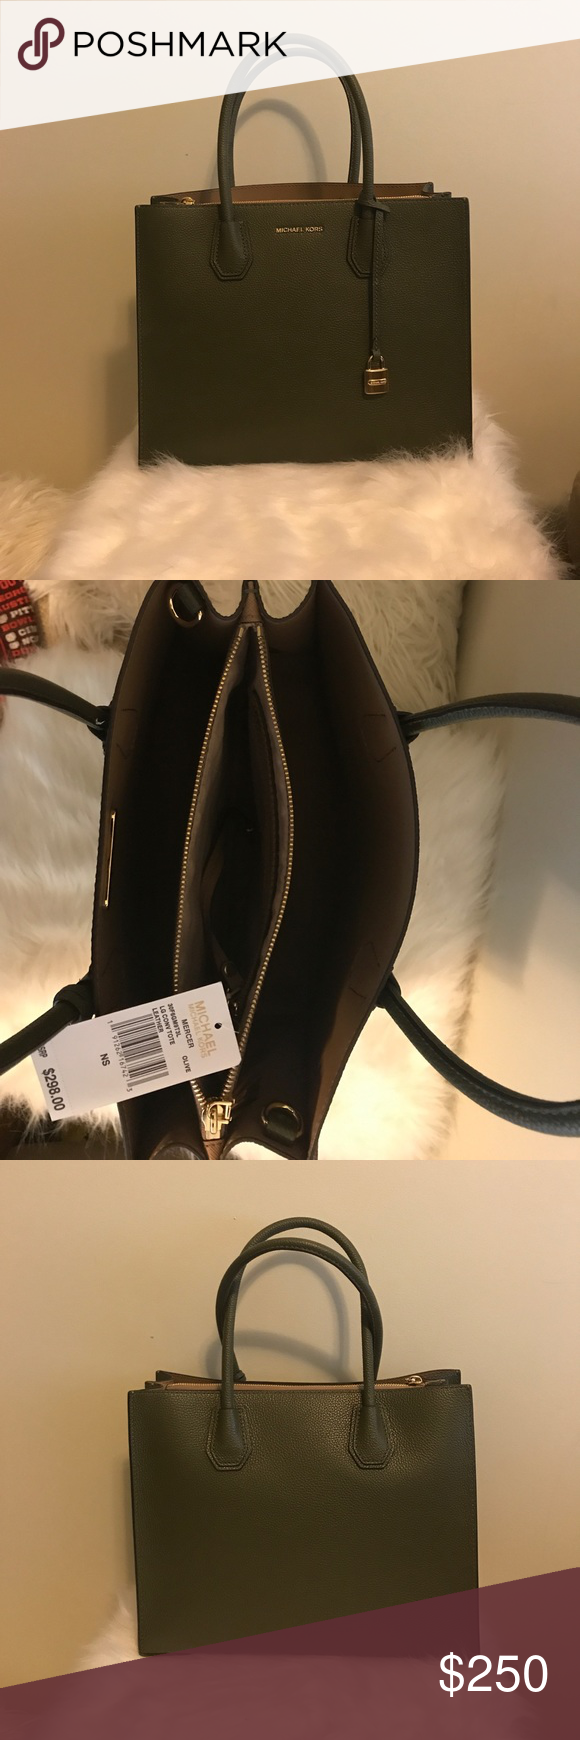 81aa11be7766 Michael Kors Large Convertible Mercer Olive Green Michael Kors Olive Green  Mercer Tote with gold hardware. Brand new with tags. Has never been worn  before.